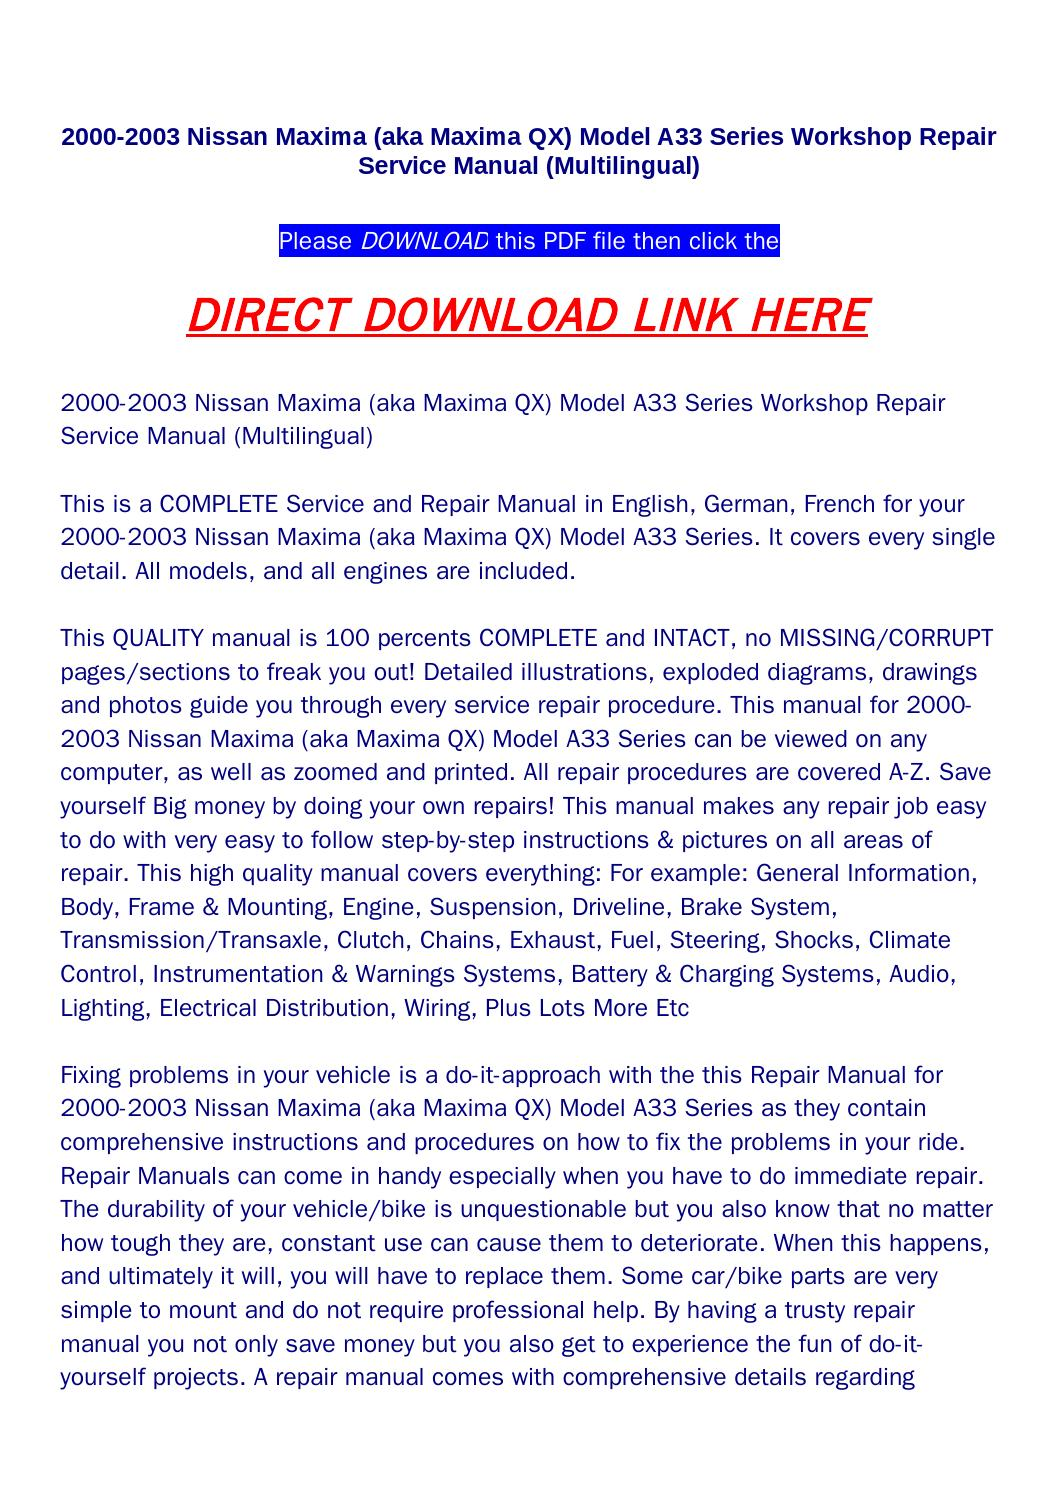 2000 2003 nissan maxima (aka maxima qx) model a33 series workshop repair  service manual (multilingua by bonus300 - issuu